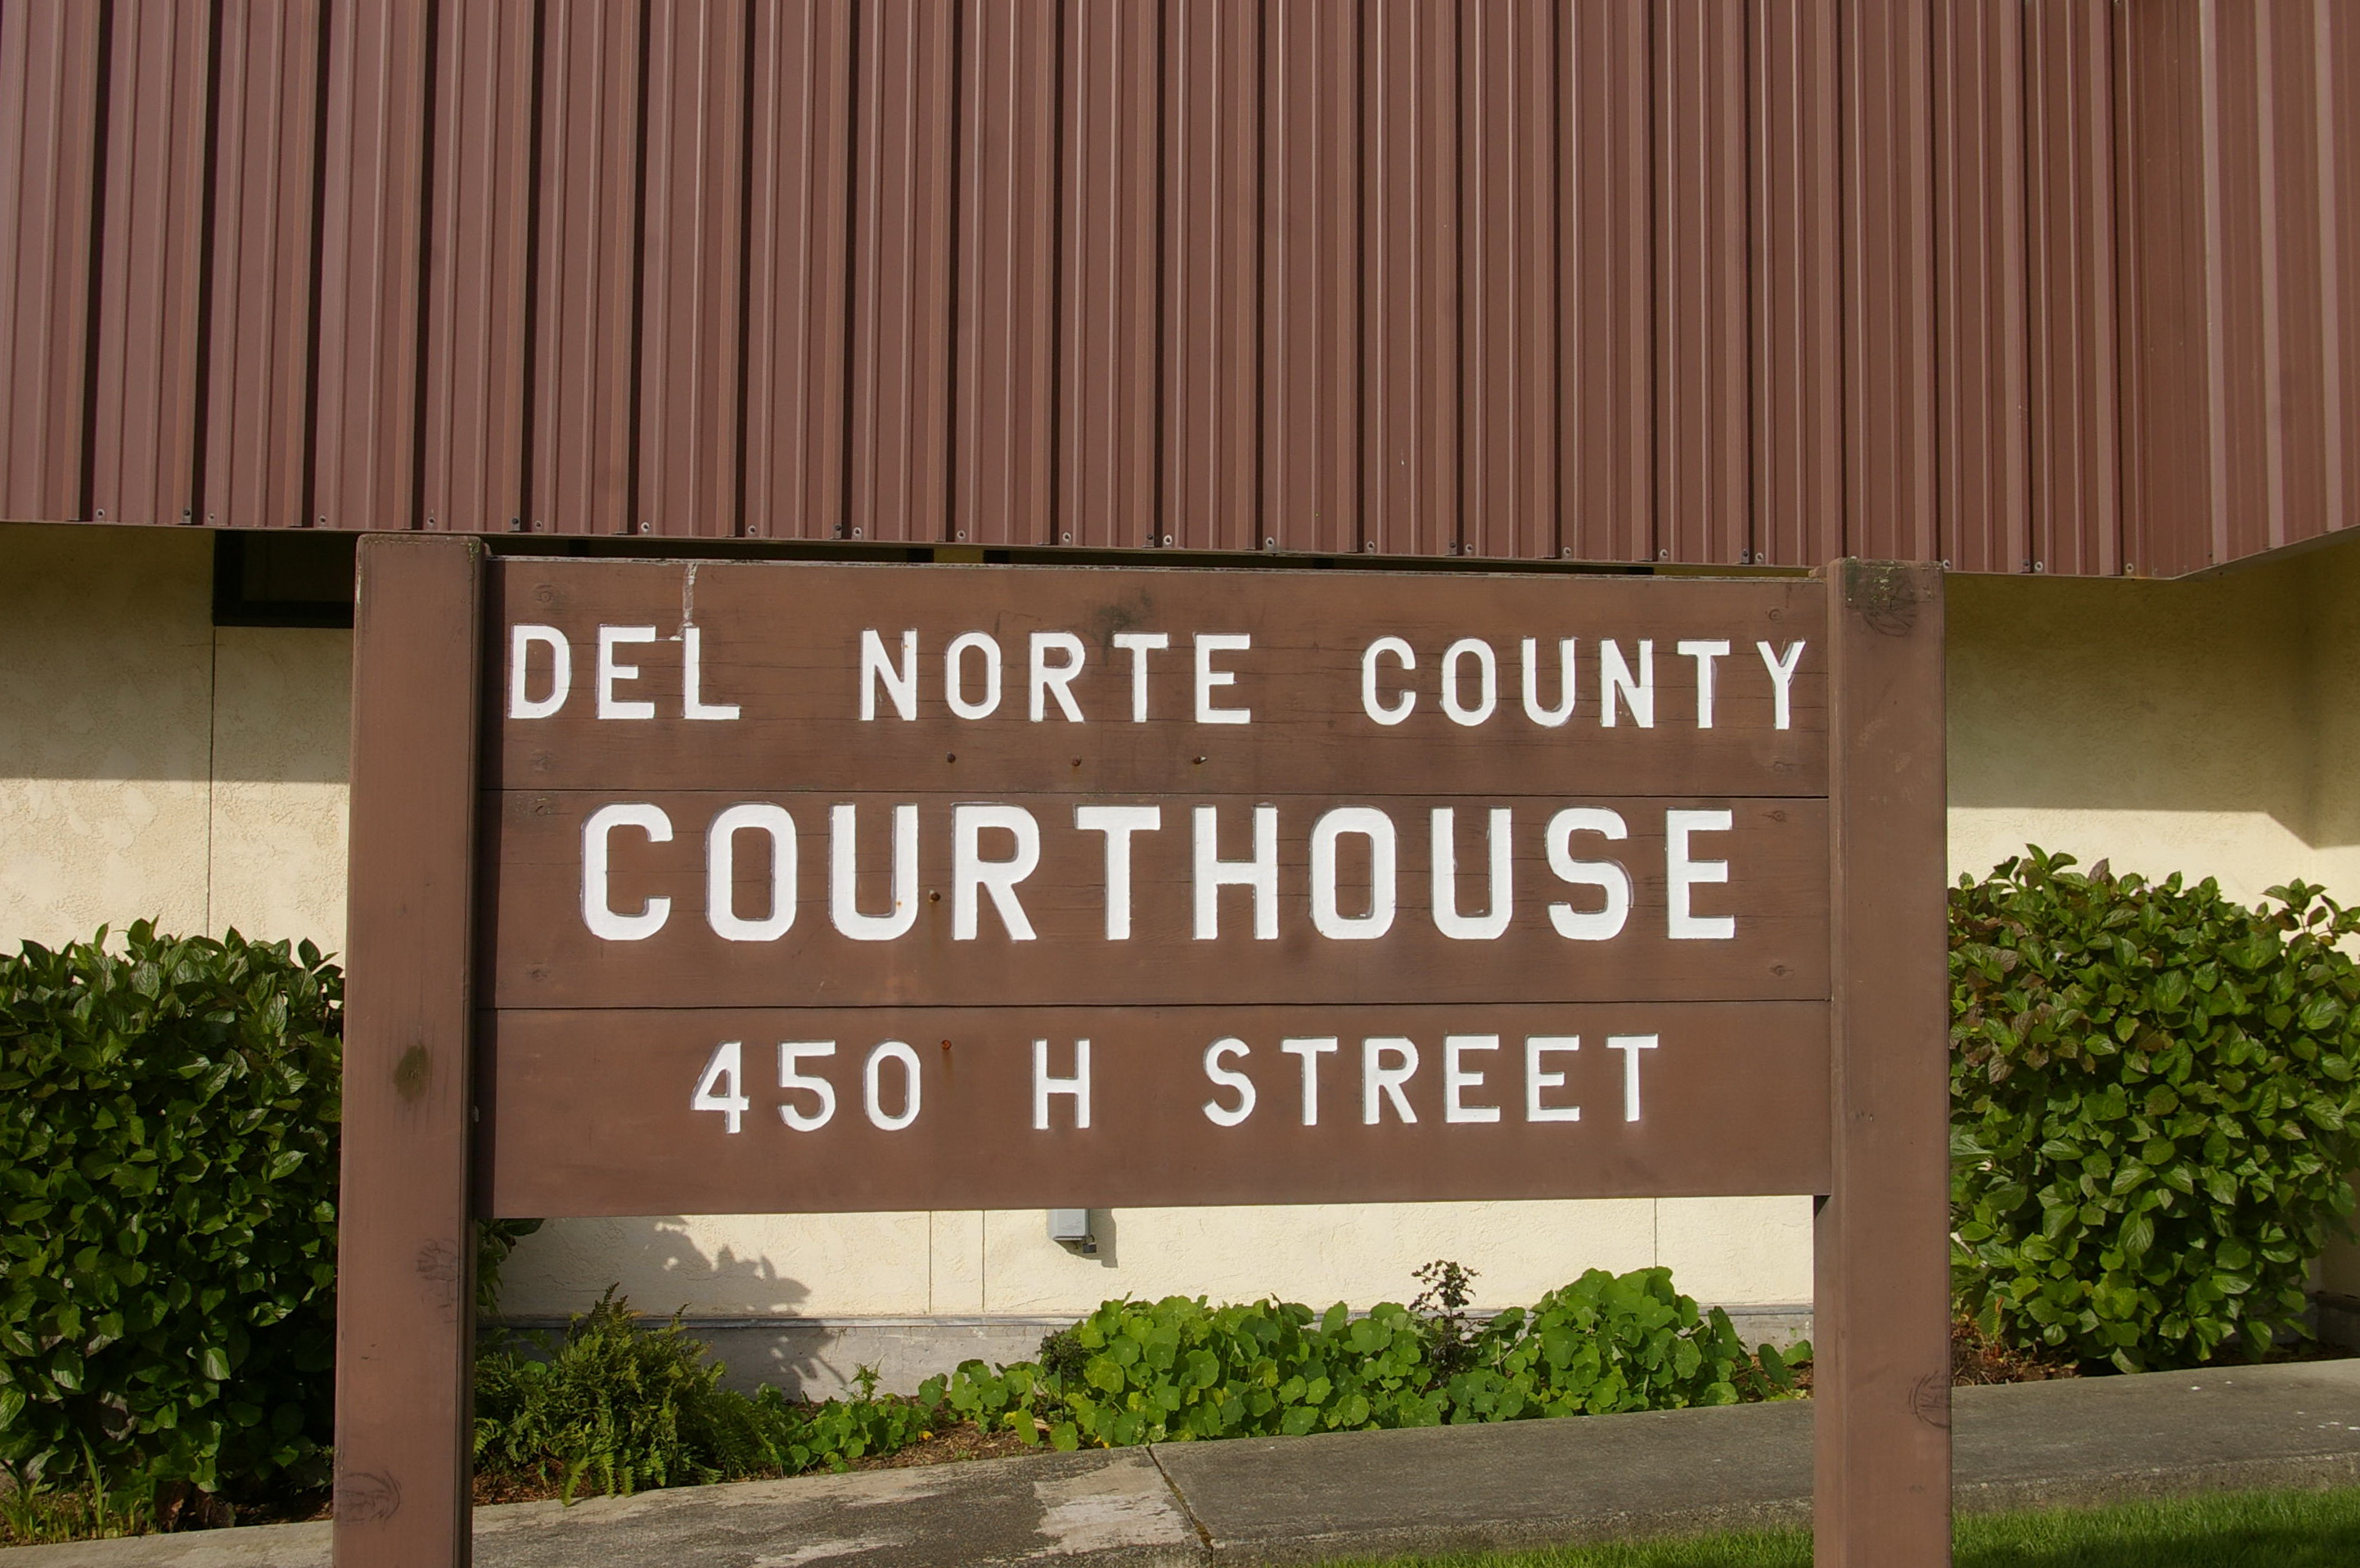 del norte county singles Here's where you can meet singles in fort dick, californiaour del norte county singles are in the 707 area code, and might live in these or other zip codes: 95538 personals.